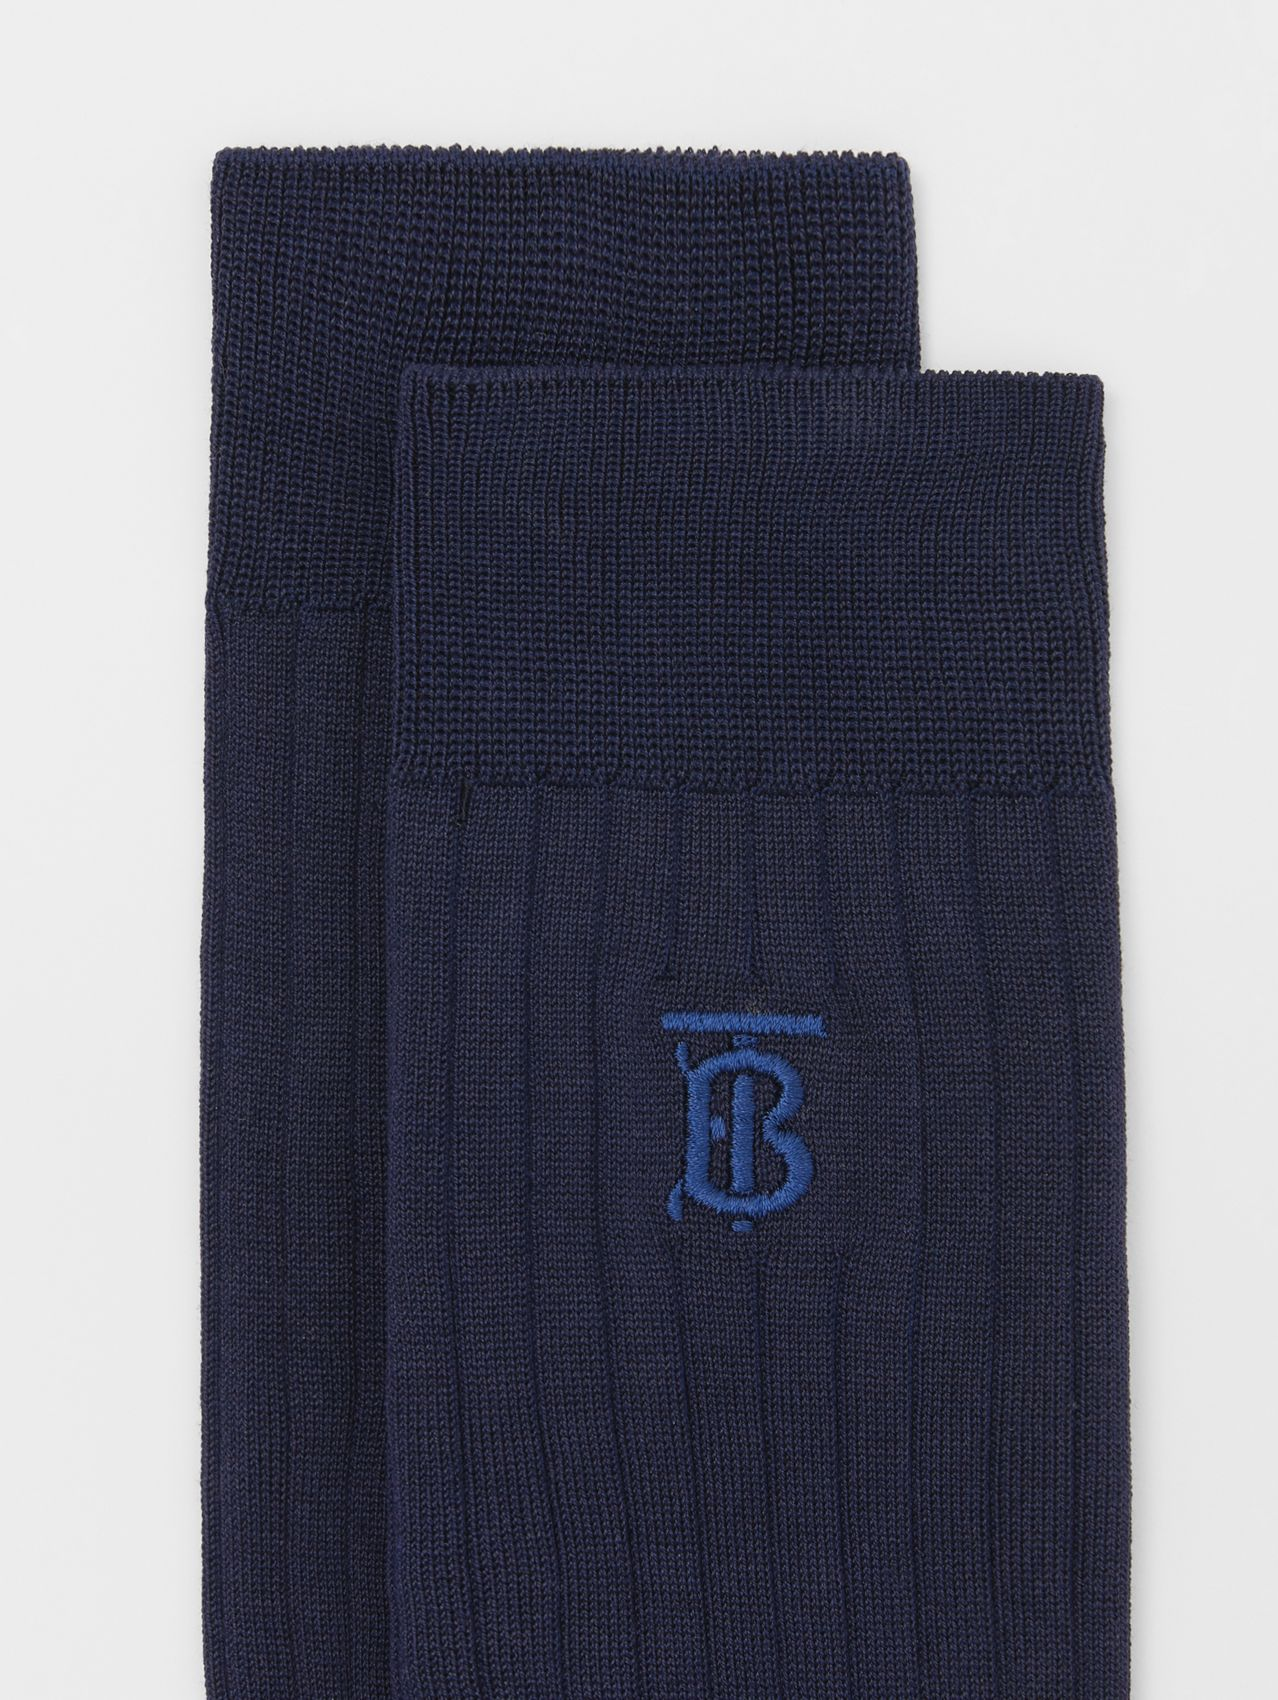 Monogram Motif Cotton Blend Socks in Navy